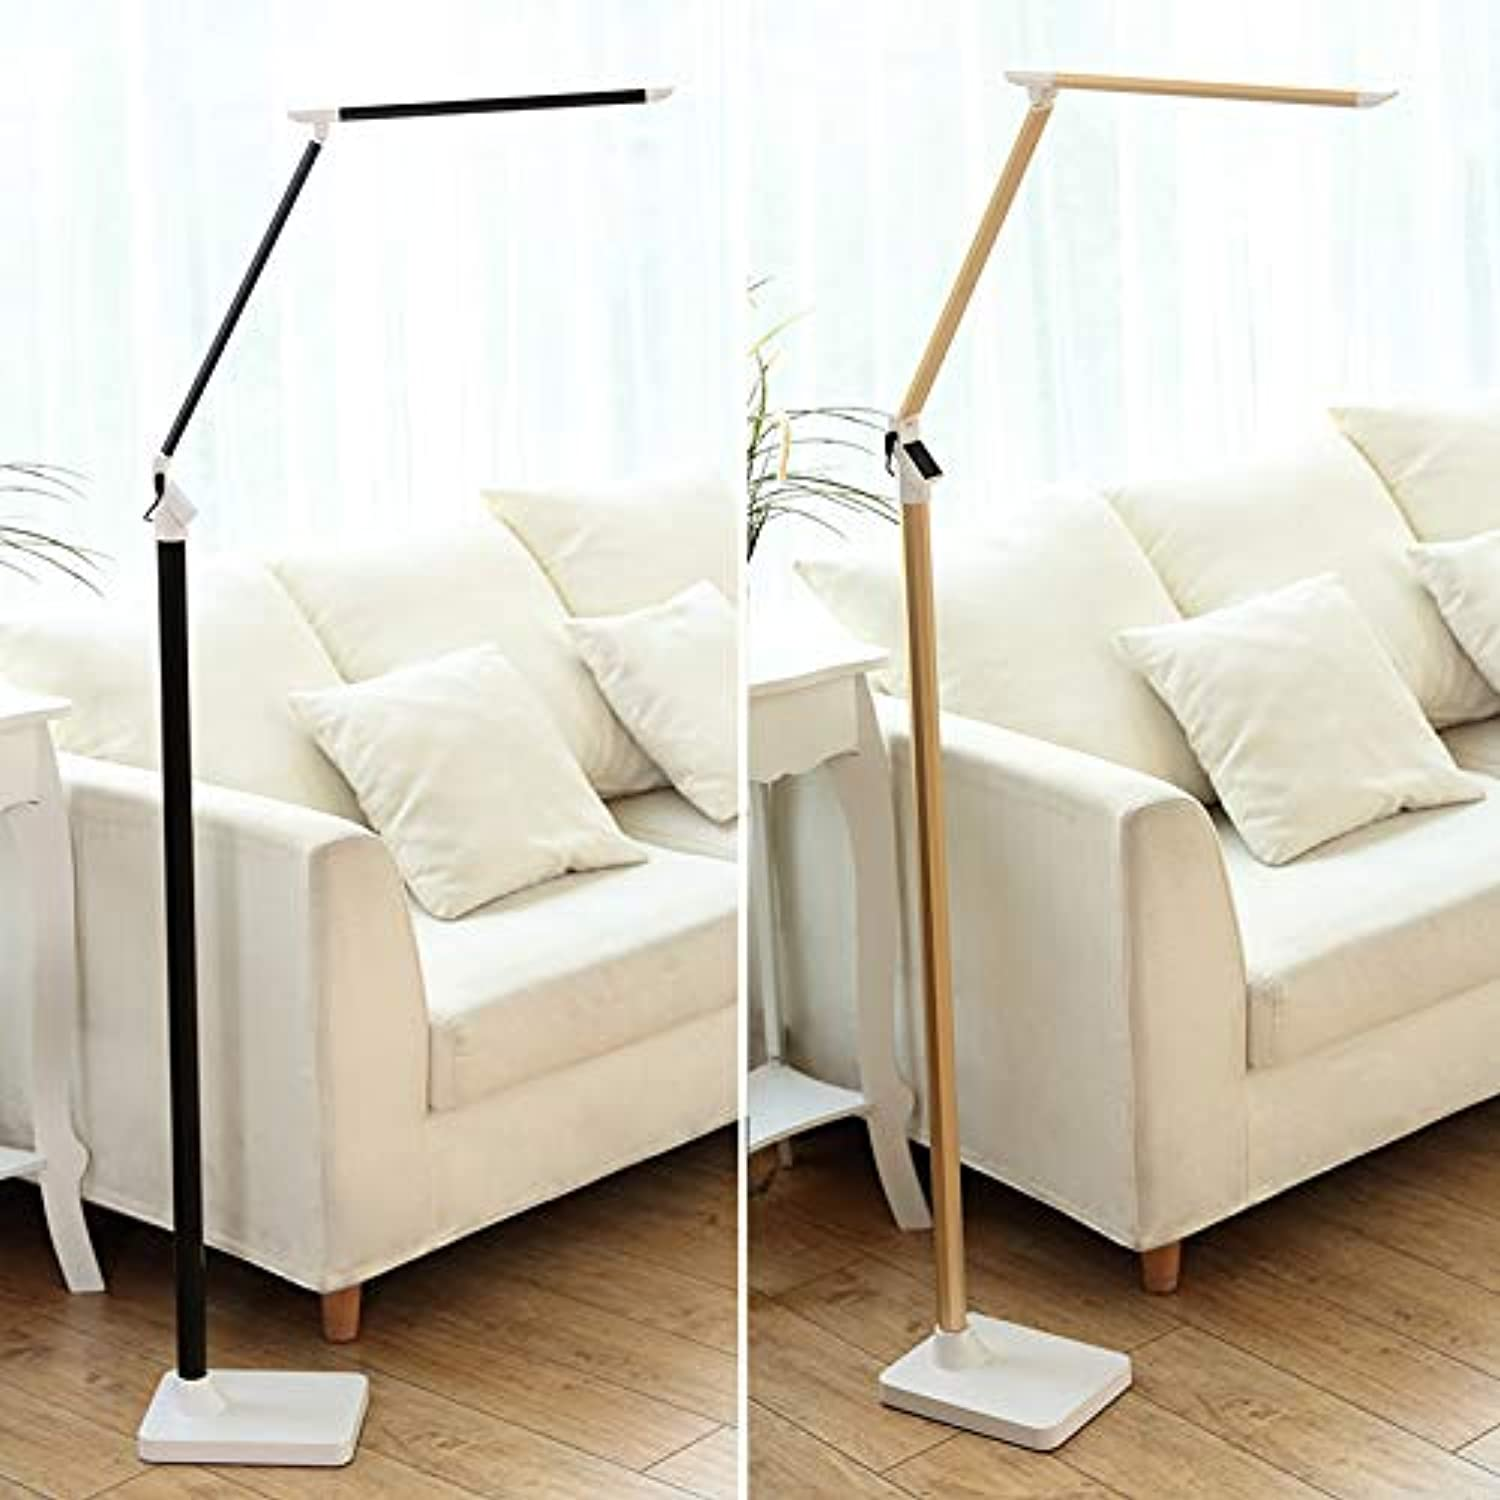 Modern desk lamp Weiß-light Weiß-light Weiß-light LED eye protection living room bedroom study simple modern remote control piano desk lamp,Luxury Gold Farbe,Five Weiß-light editions B07P78KRDH     | Ausgezeichnet (in) Qualität